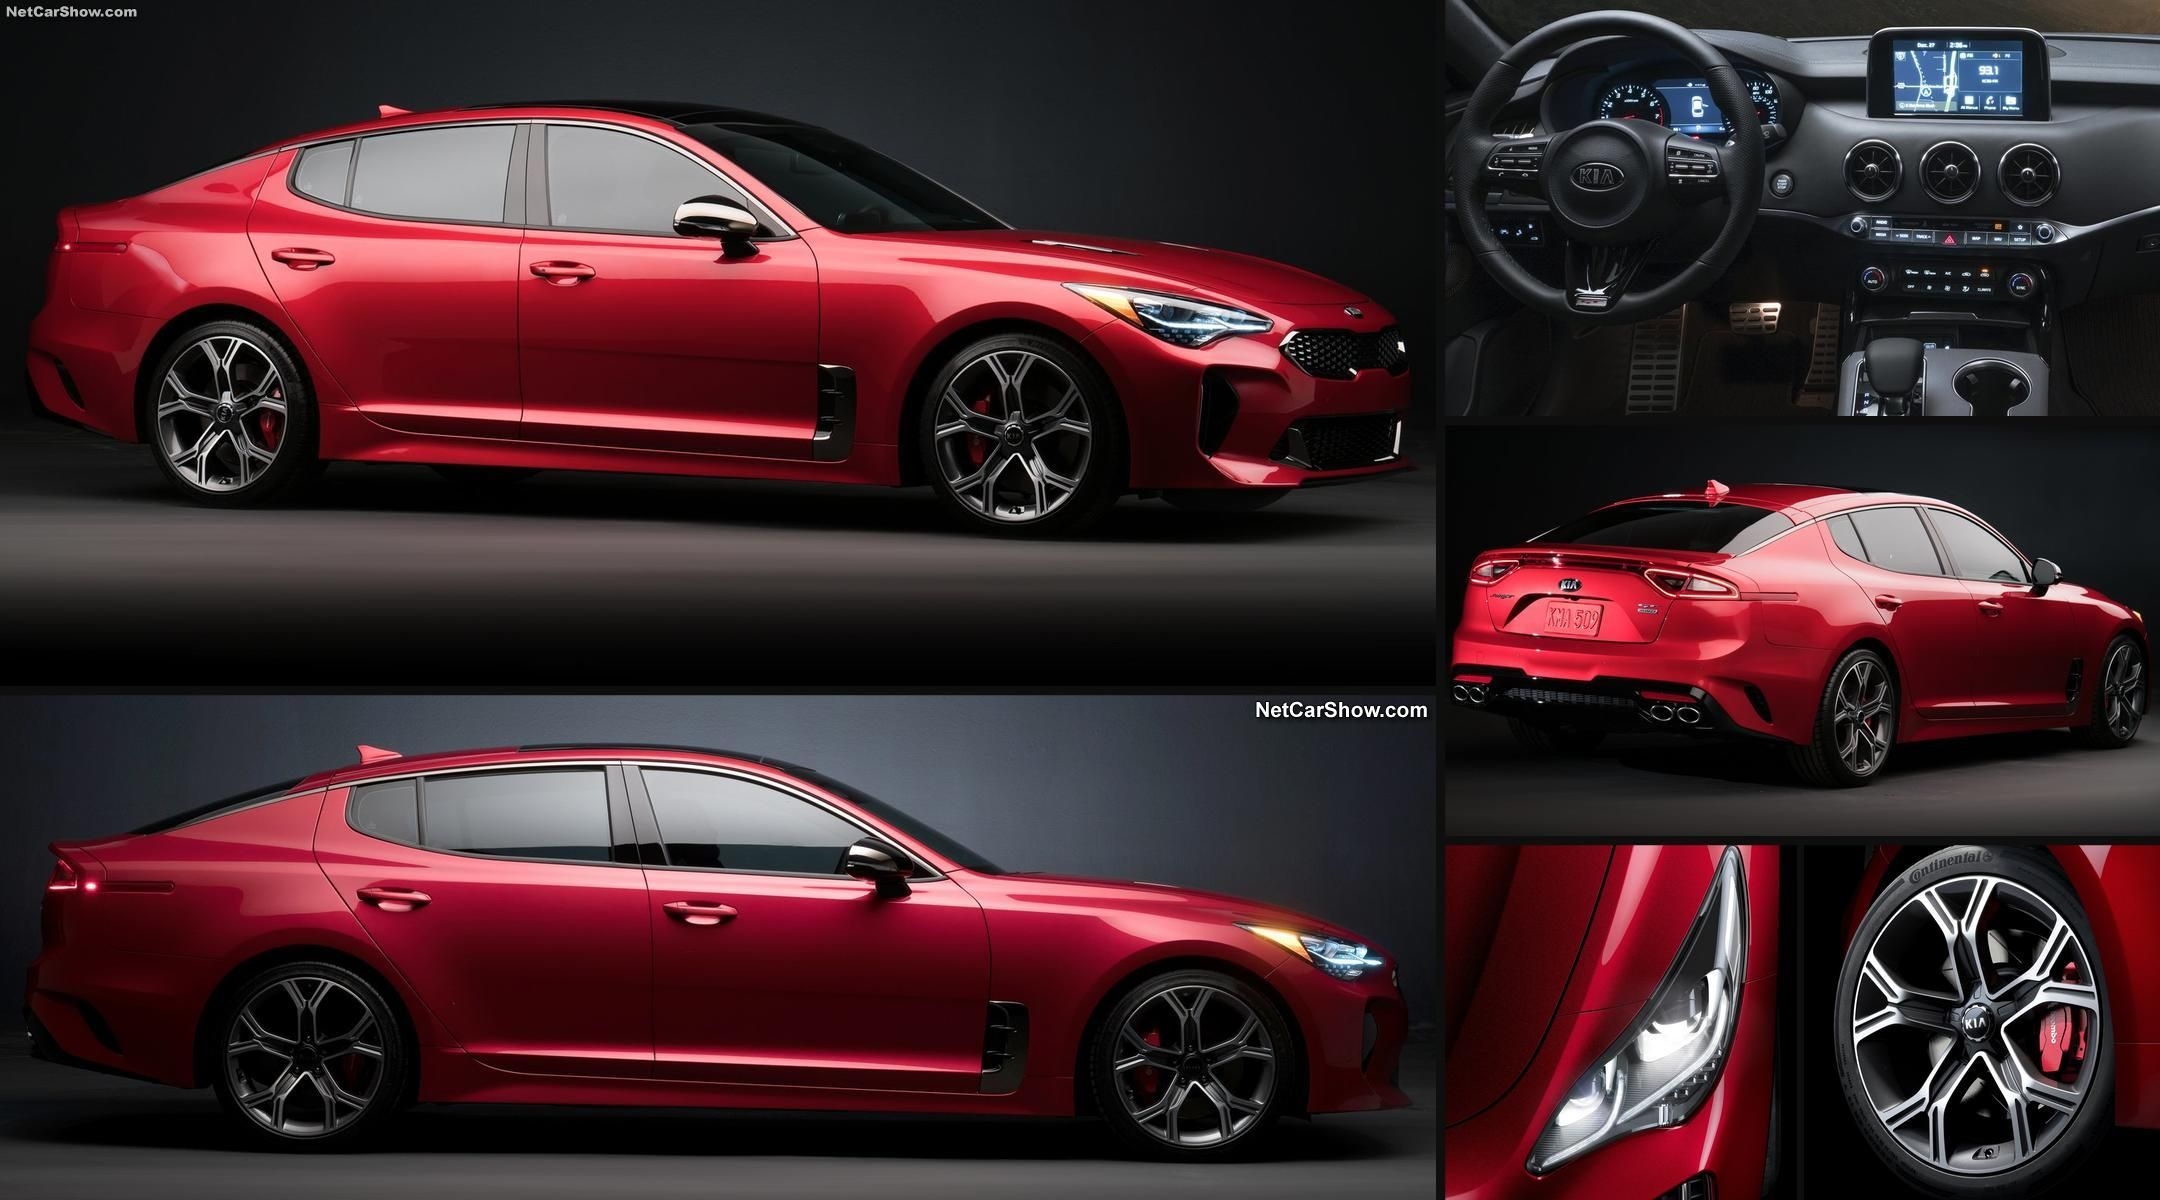 The Kia Stinger Gt Is Kia S Fantastic 365 Hp Rear Wheel Drive Sport Sedan Aimed At The Germans Http Jalopnik Com The Kia Stinger Gt Kia Stinger Kia Kia 2017